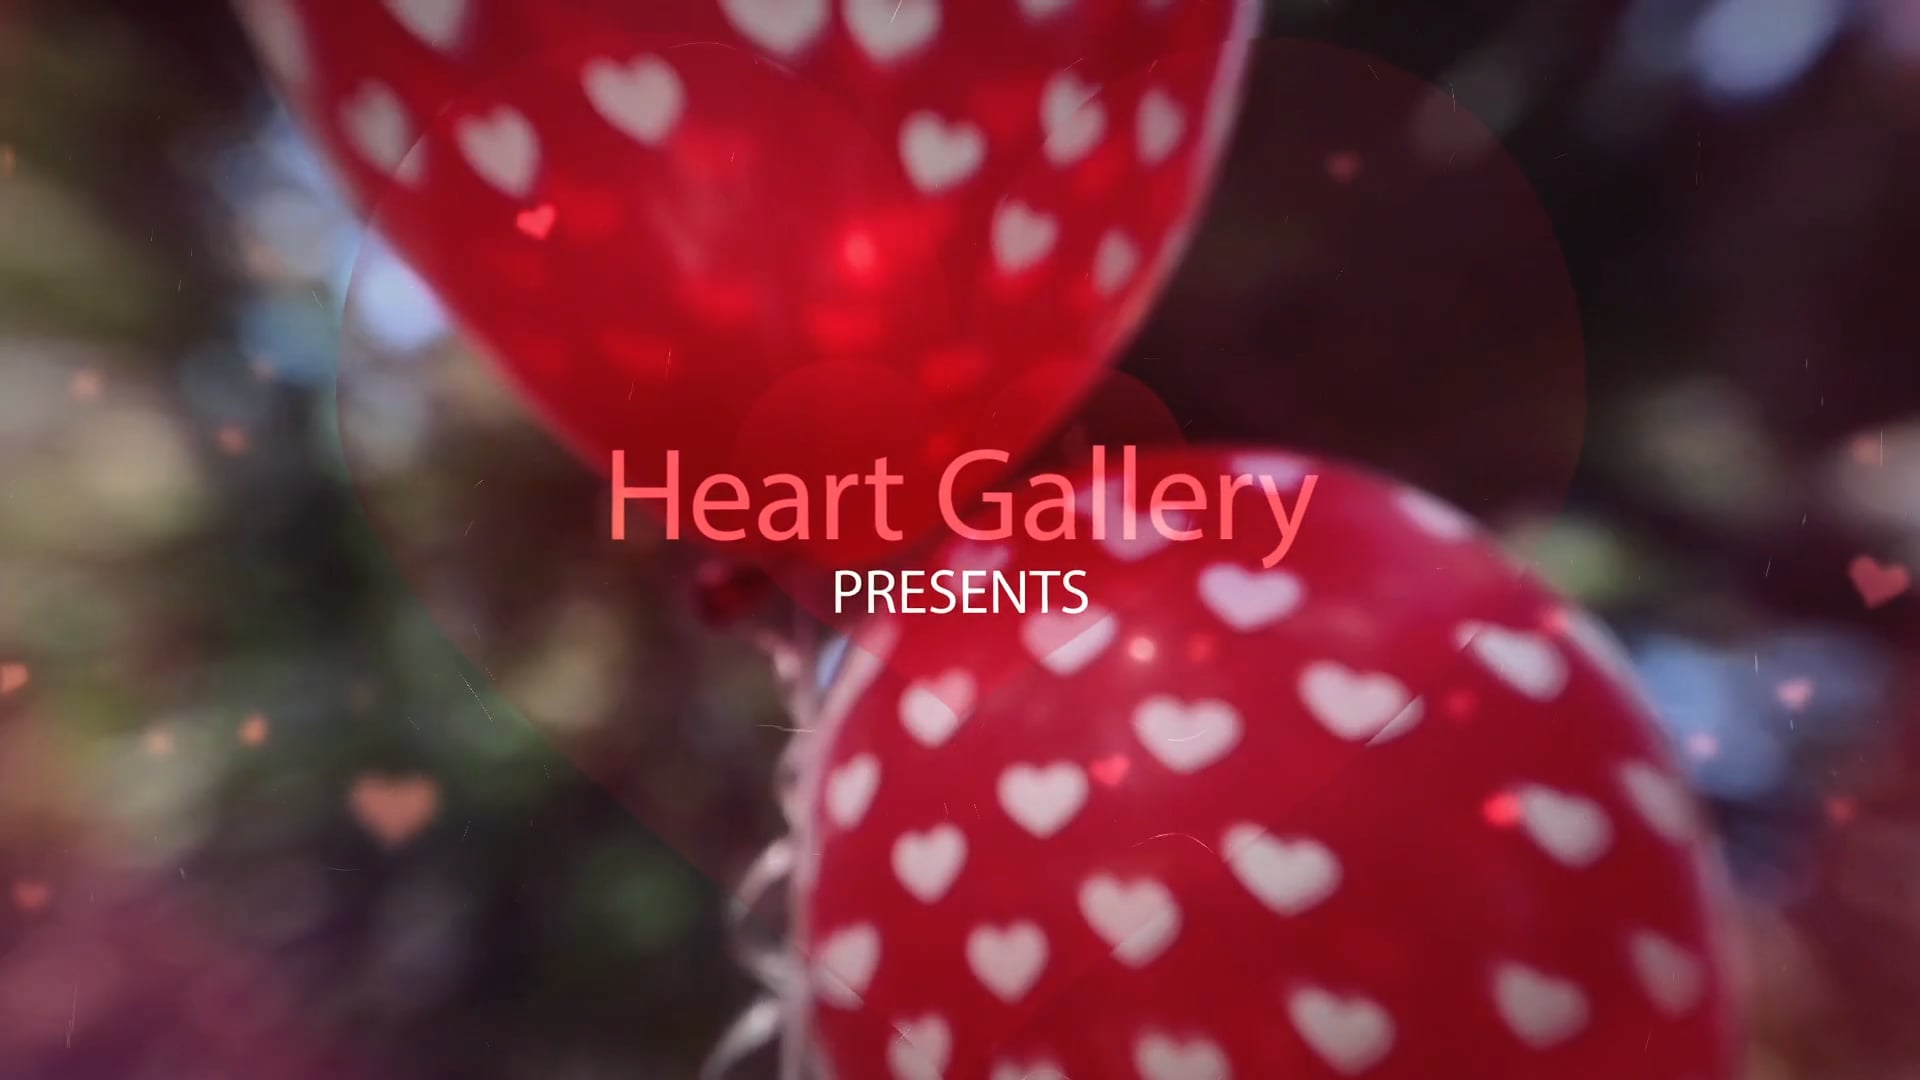 What is Heart Gallery?